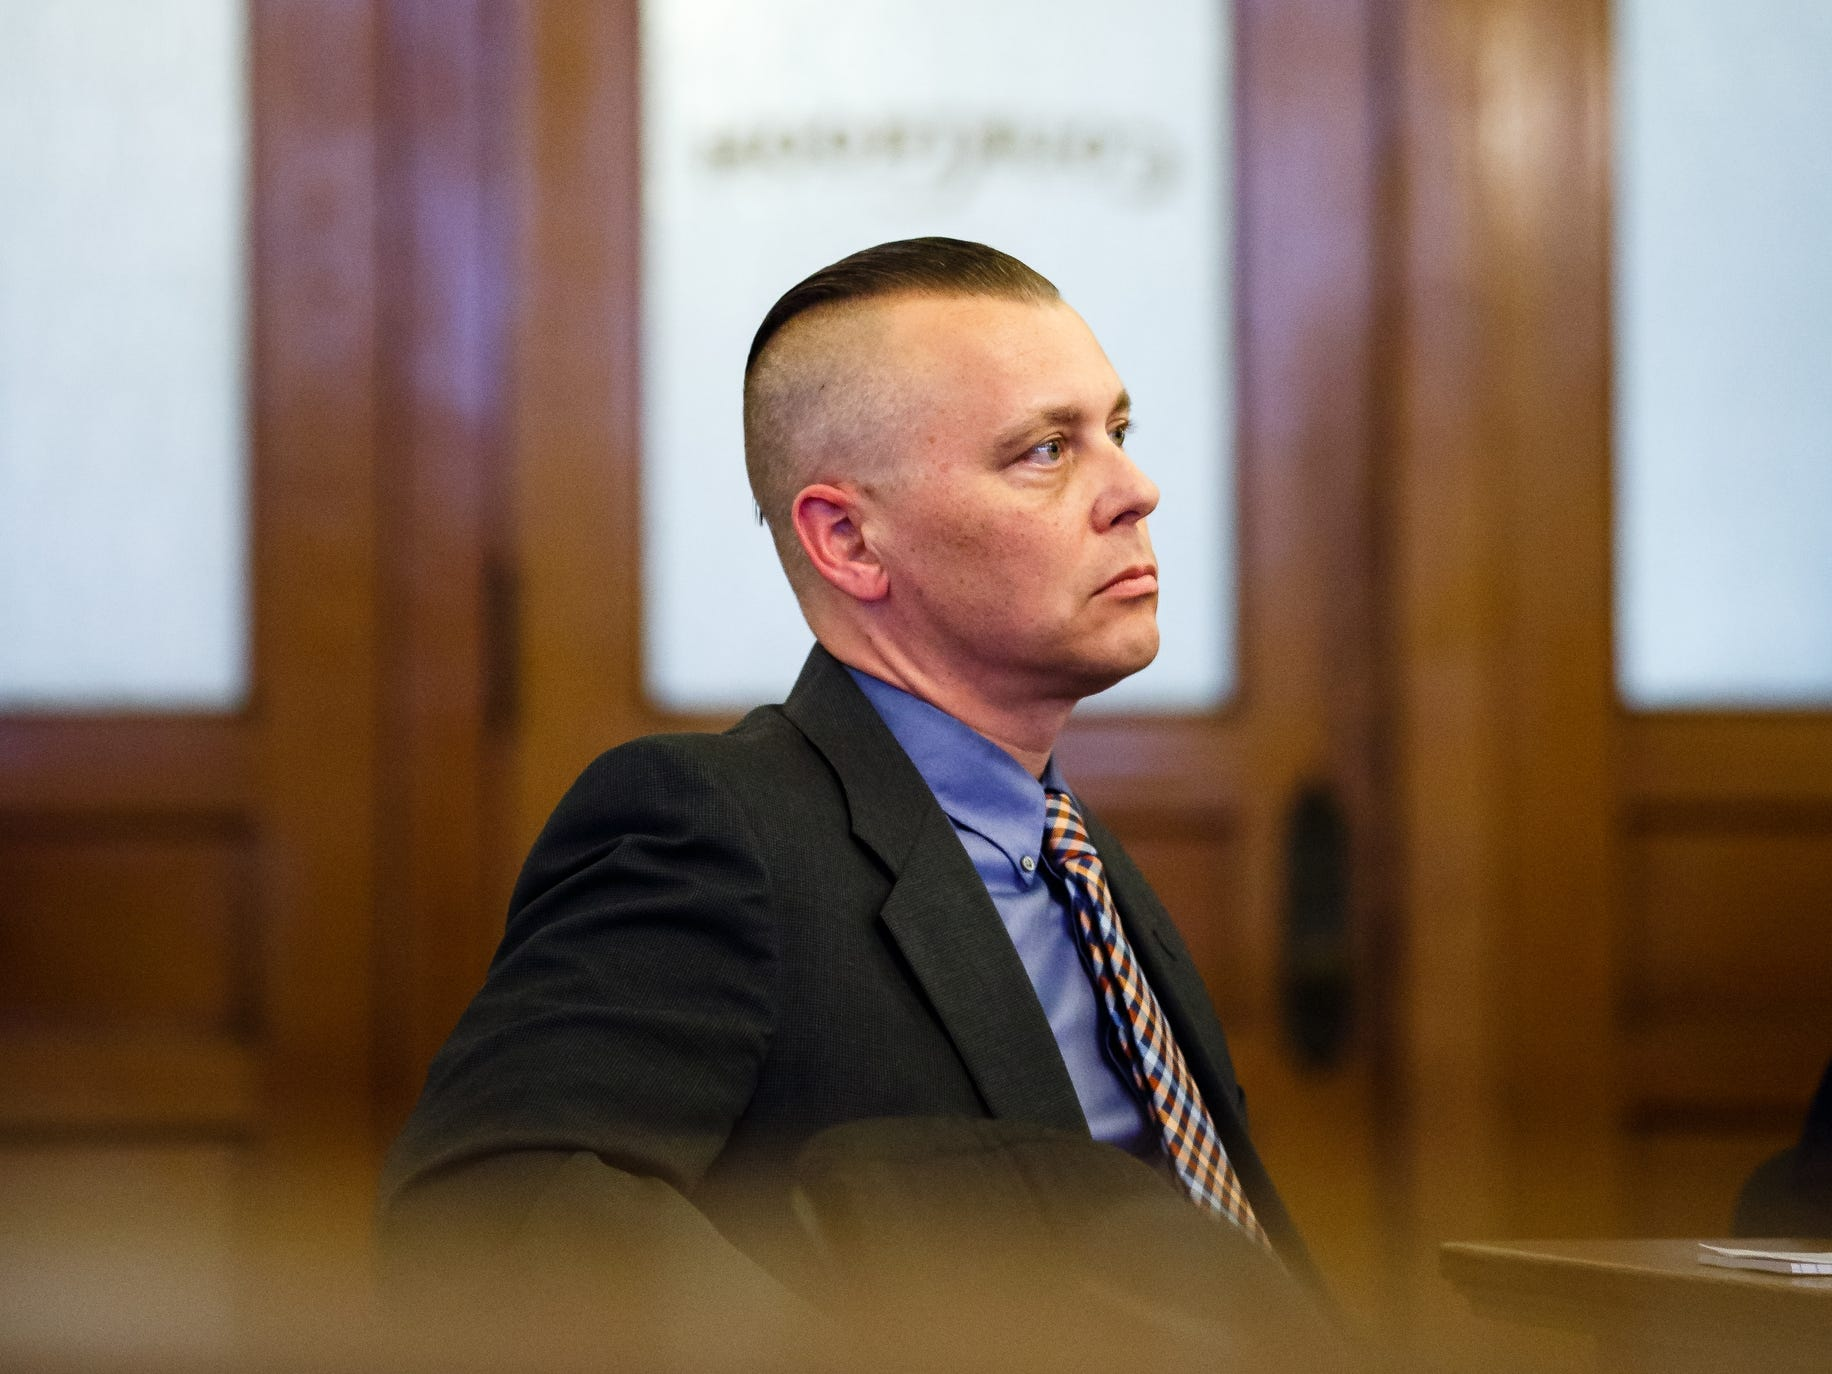 Troy Griffin sits and listens as his defense lawyer Robert Rehkemper makes his opening statements at the Dallas County Courthouse on Monday, Oct. 22, 2018, in Adel. Griffin's ex-wife Gina Battani accused him of raping her multiple times after they were married in April of 2016, but a Dallas County jury found him not guilty on all counts.